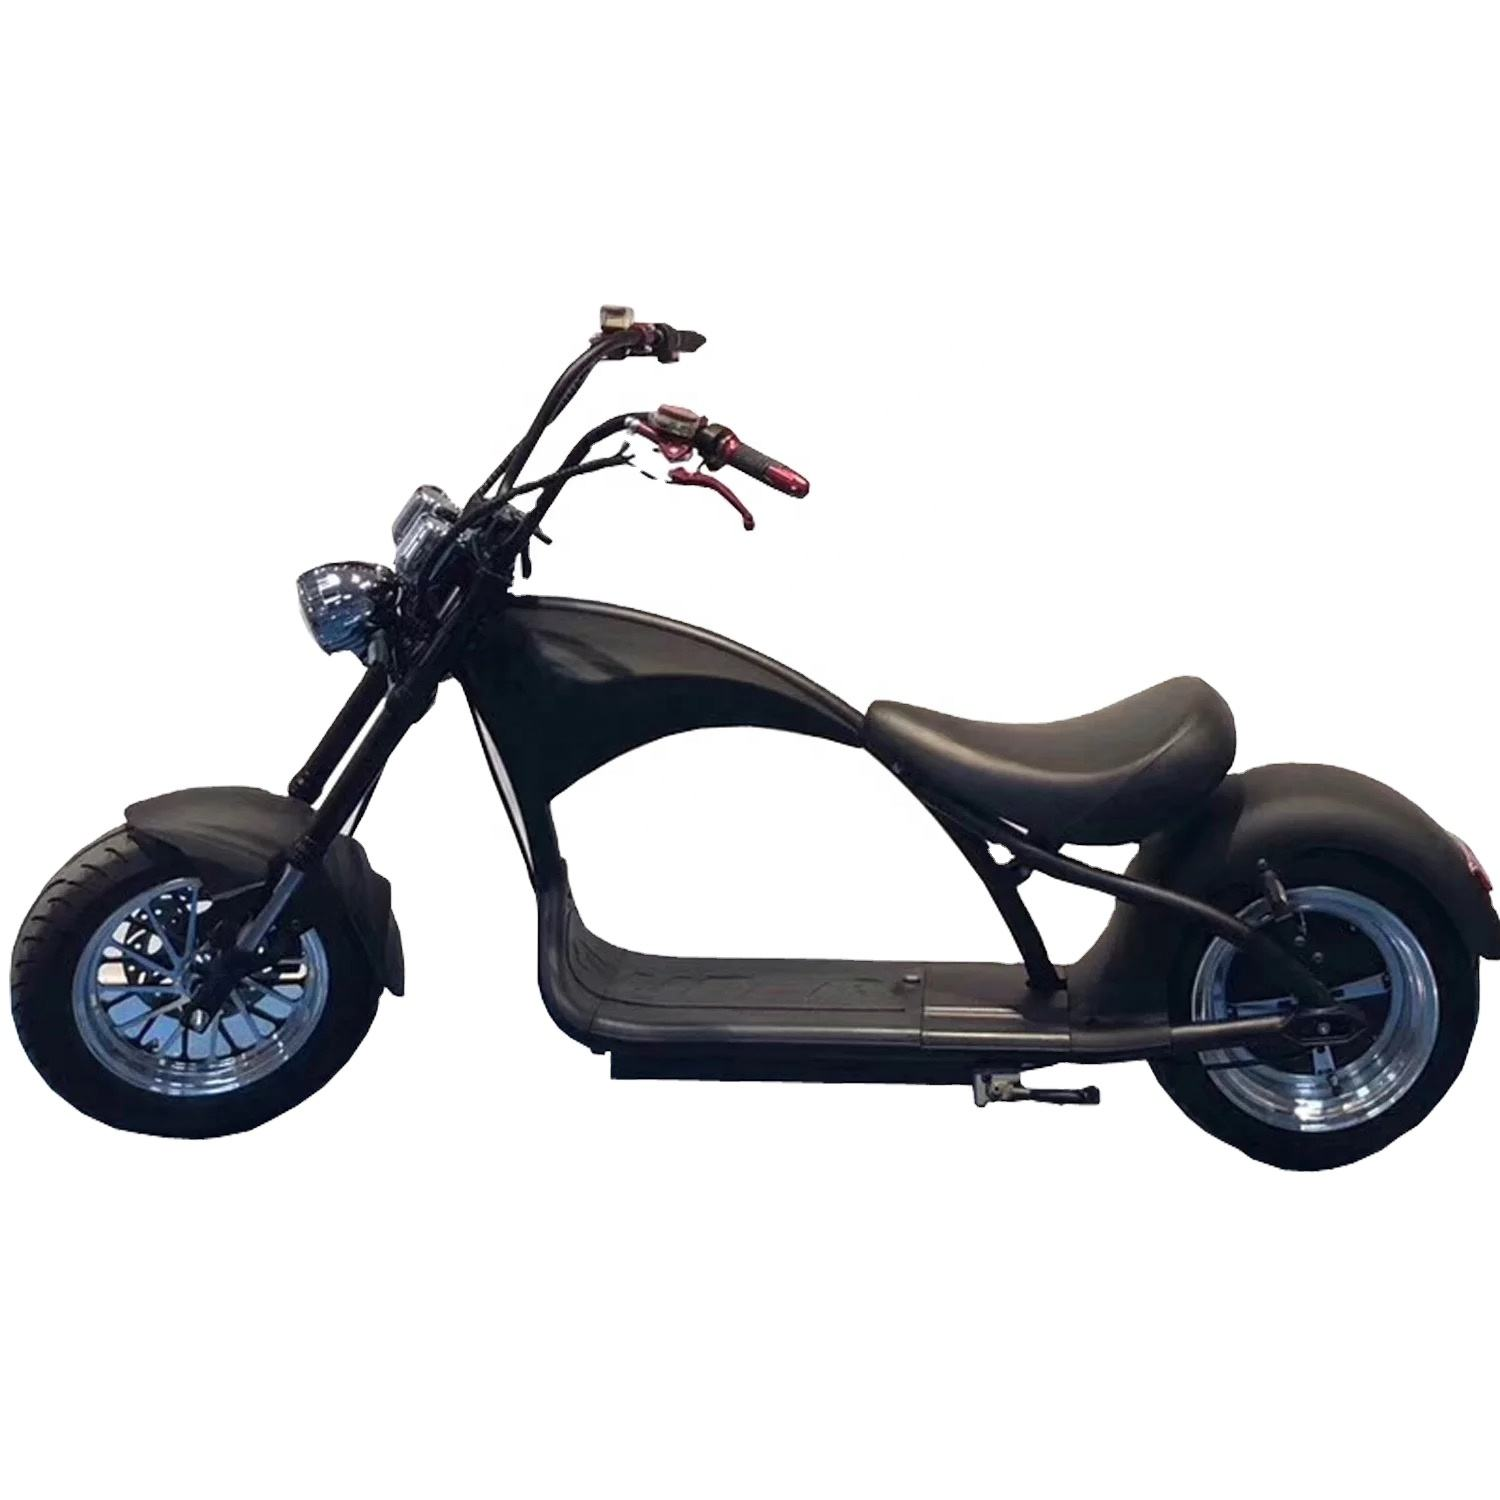 EEC COC 2000W Electric Scooter Citycoco 80KM range citicoco chopper chinese prices